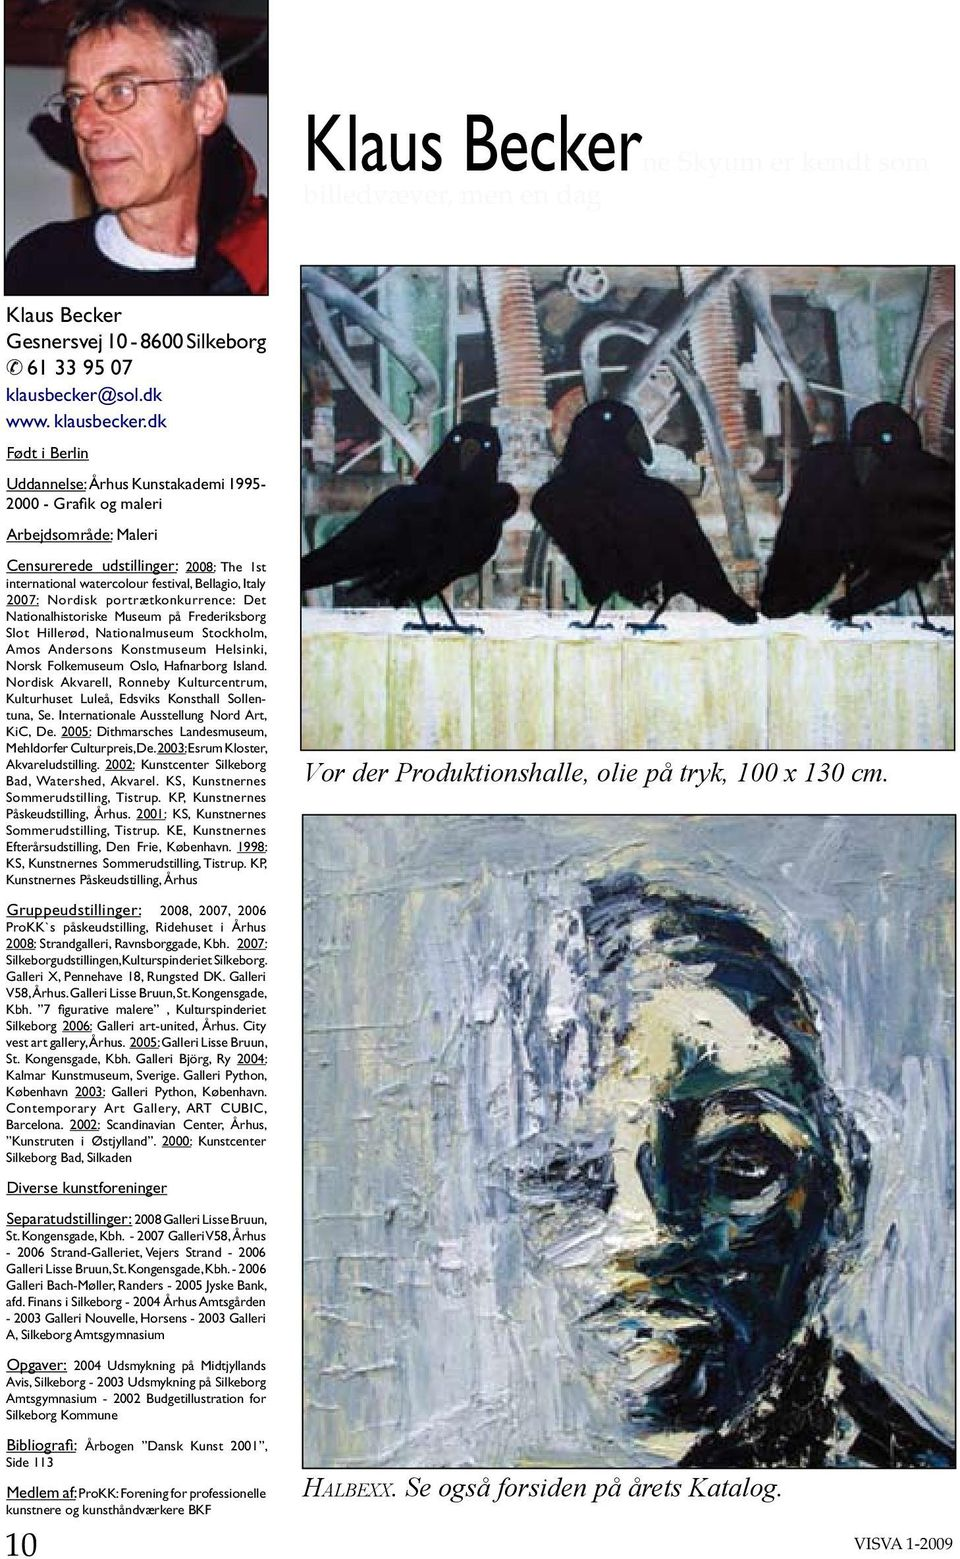 dk Født i Berlin Uddannelse: Århus Kunstakademi 1995-2000 - Grafik og maleri Arbejdsområde: Maleri Censurerede udstillinger: 2008: The 1st international watercolour festival, Bellagio, Italy 2007: